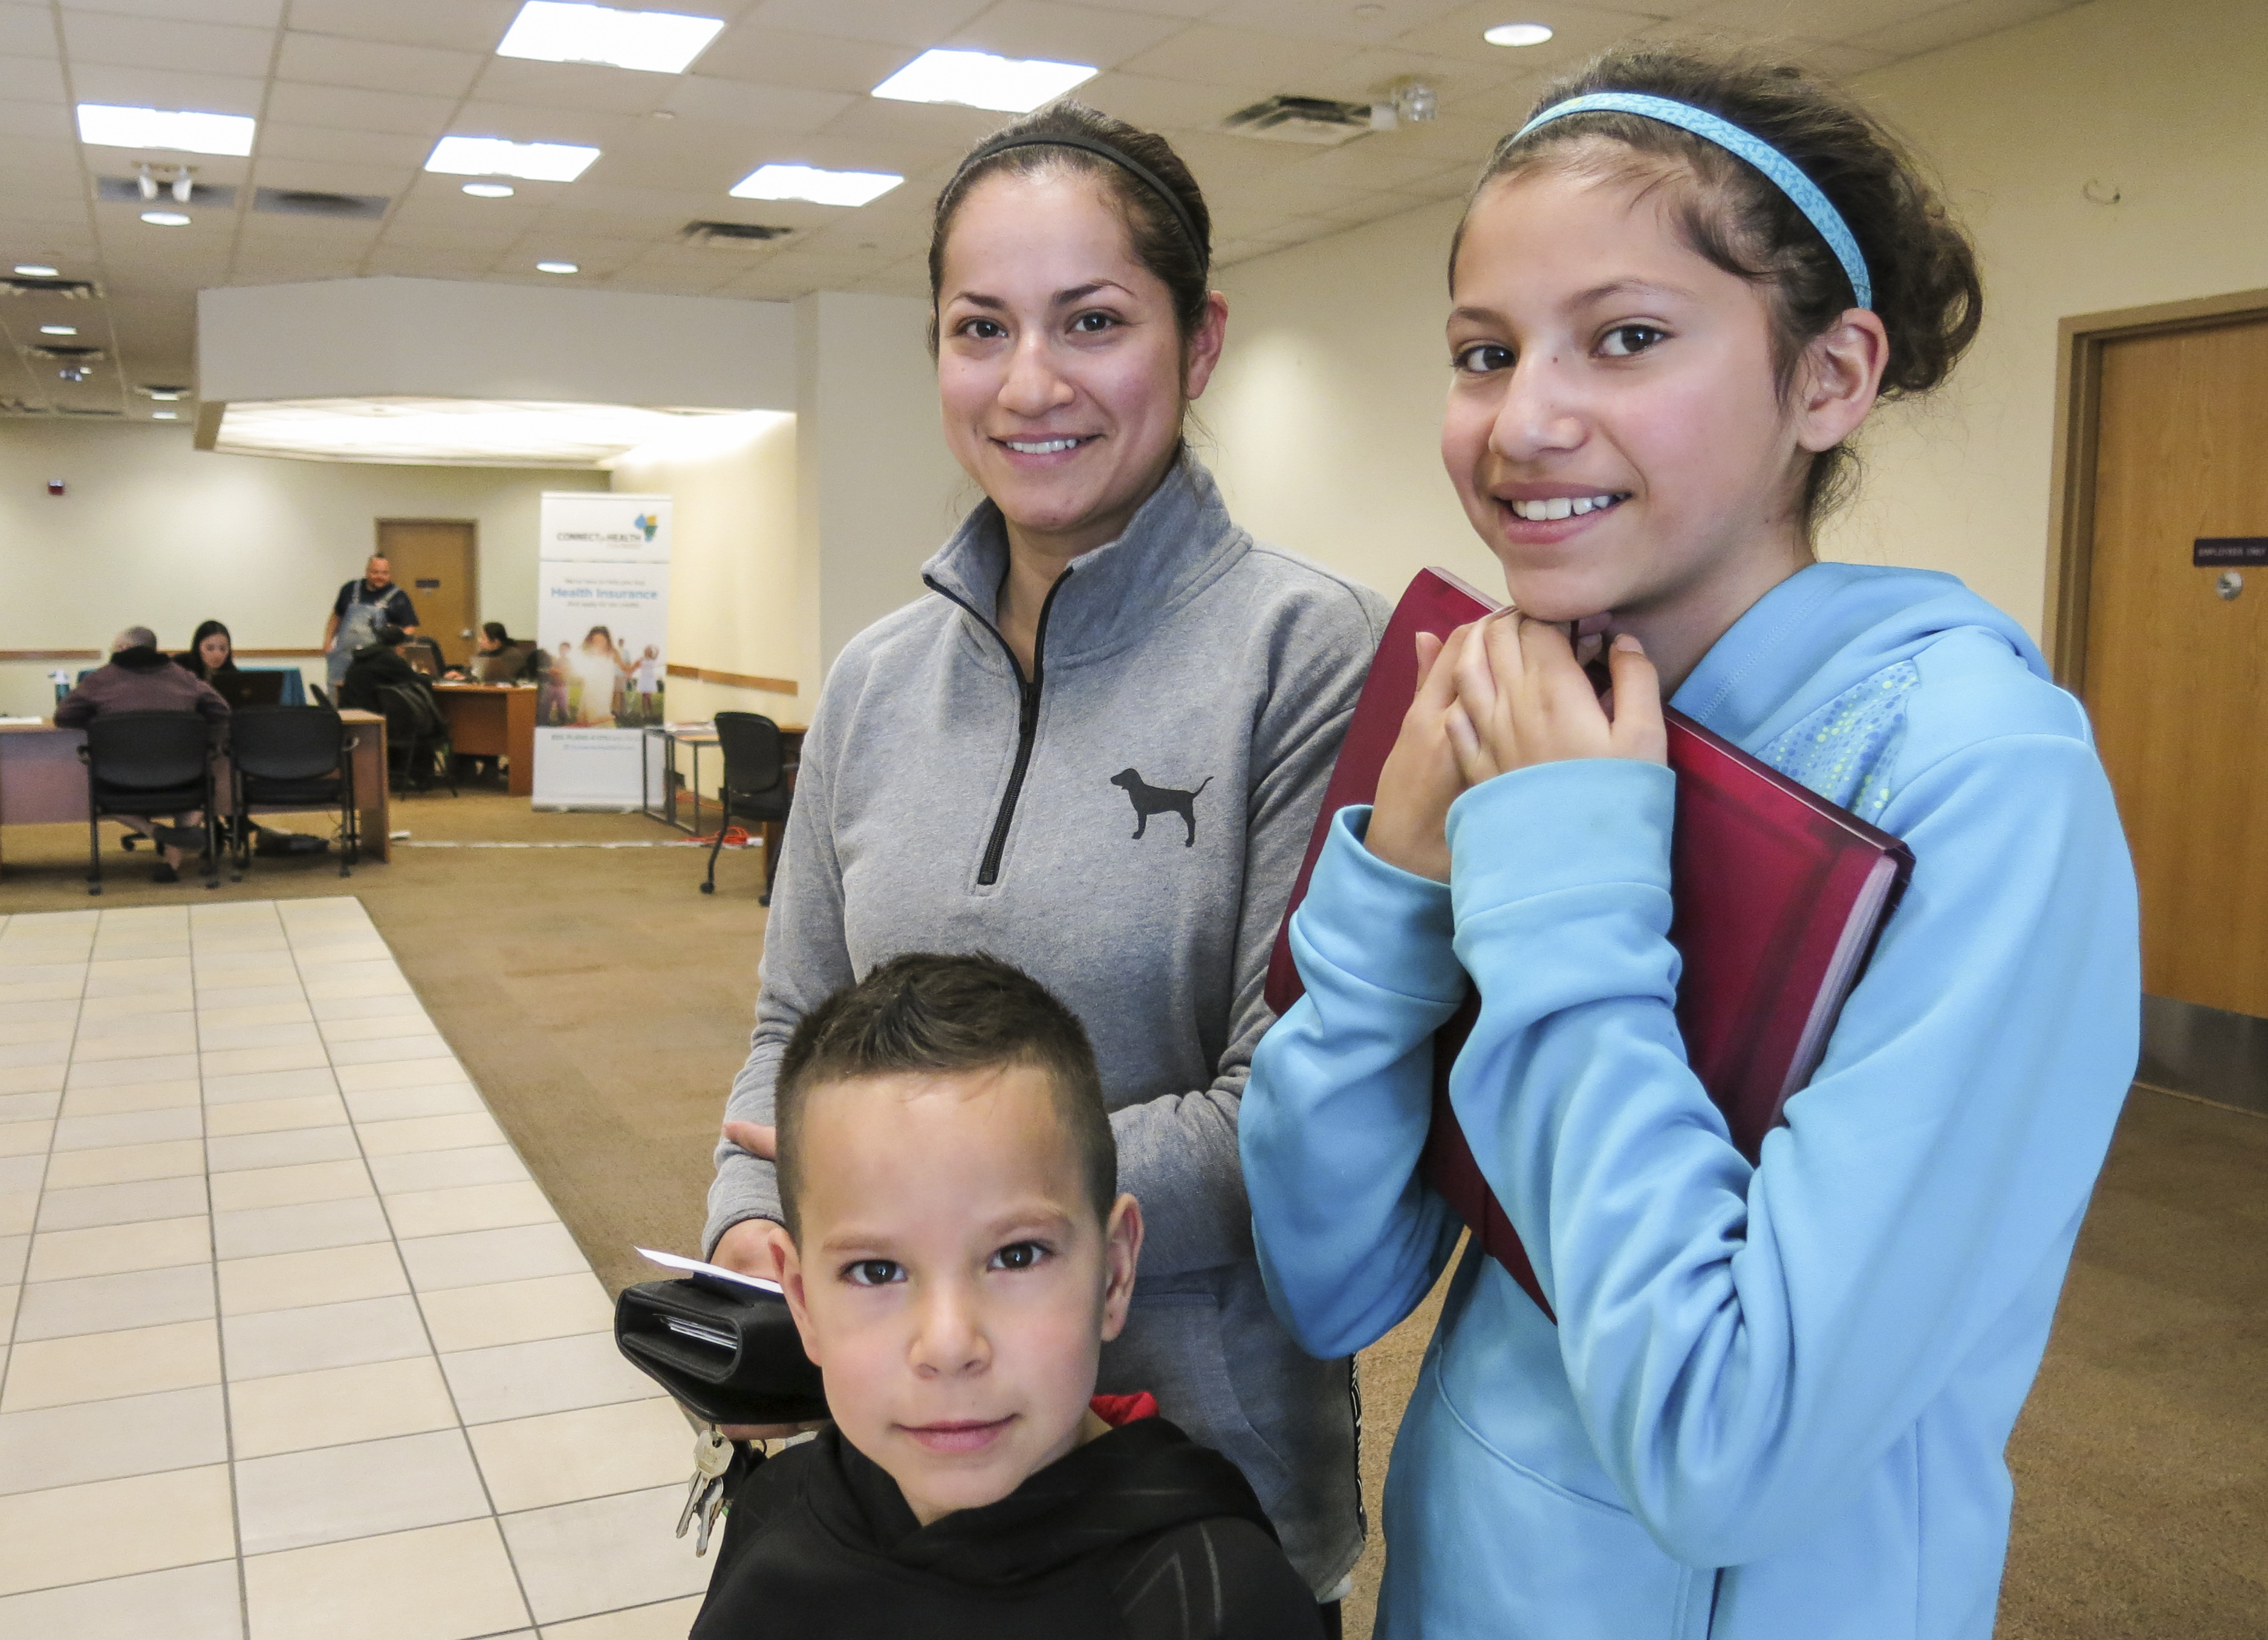 <p>CarmenPerez, a mother from Commerce City, and her children visit the downtown Denver walk-in center for Connect for Health Colorado, the state's health coverage marketplace.</p>